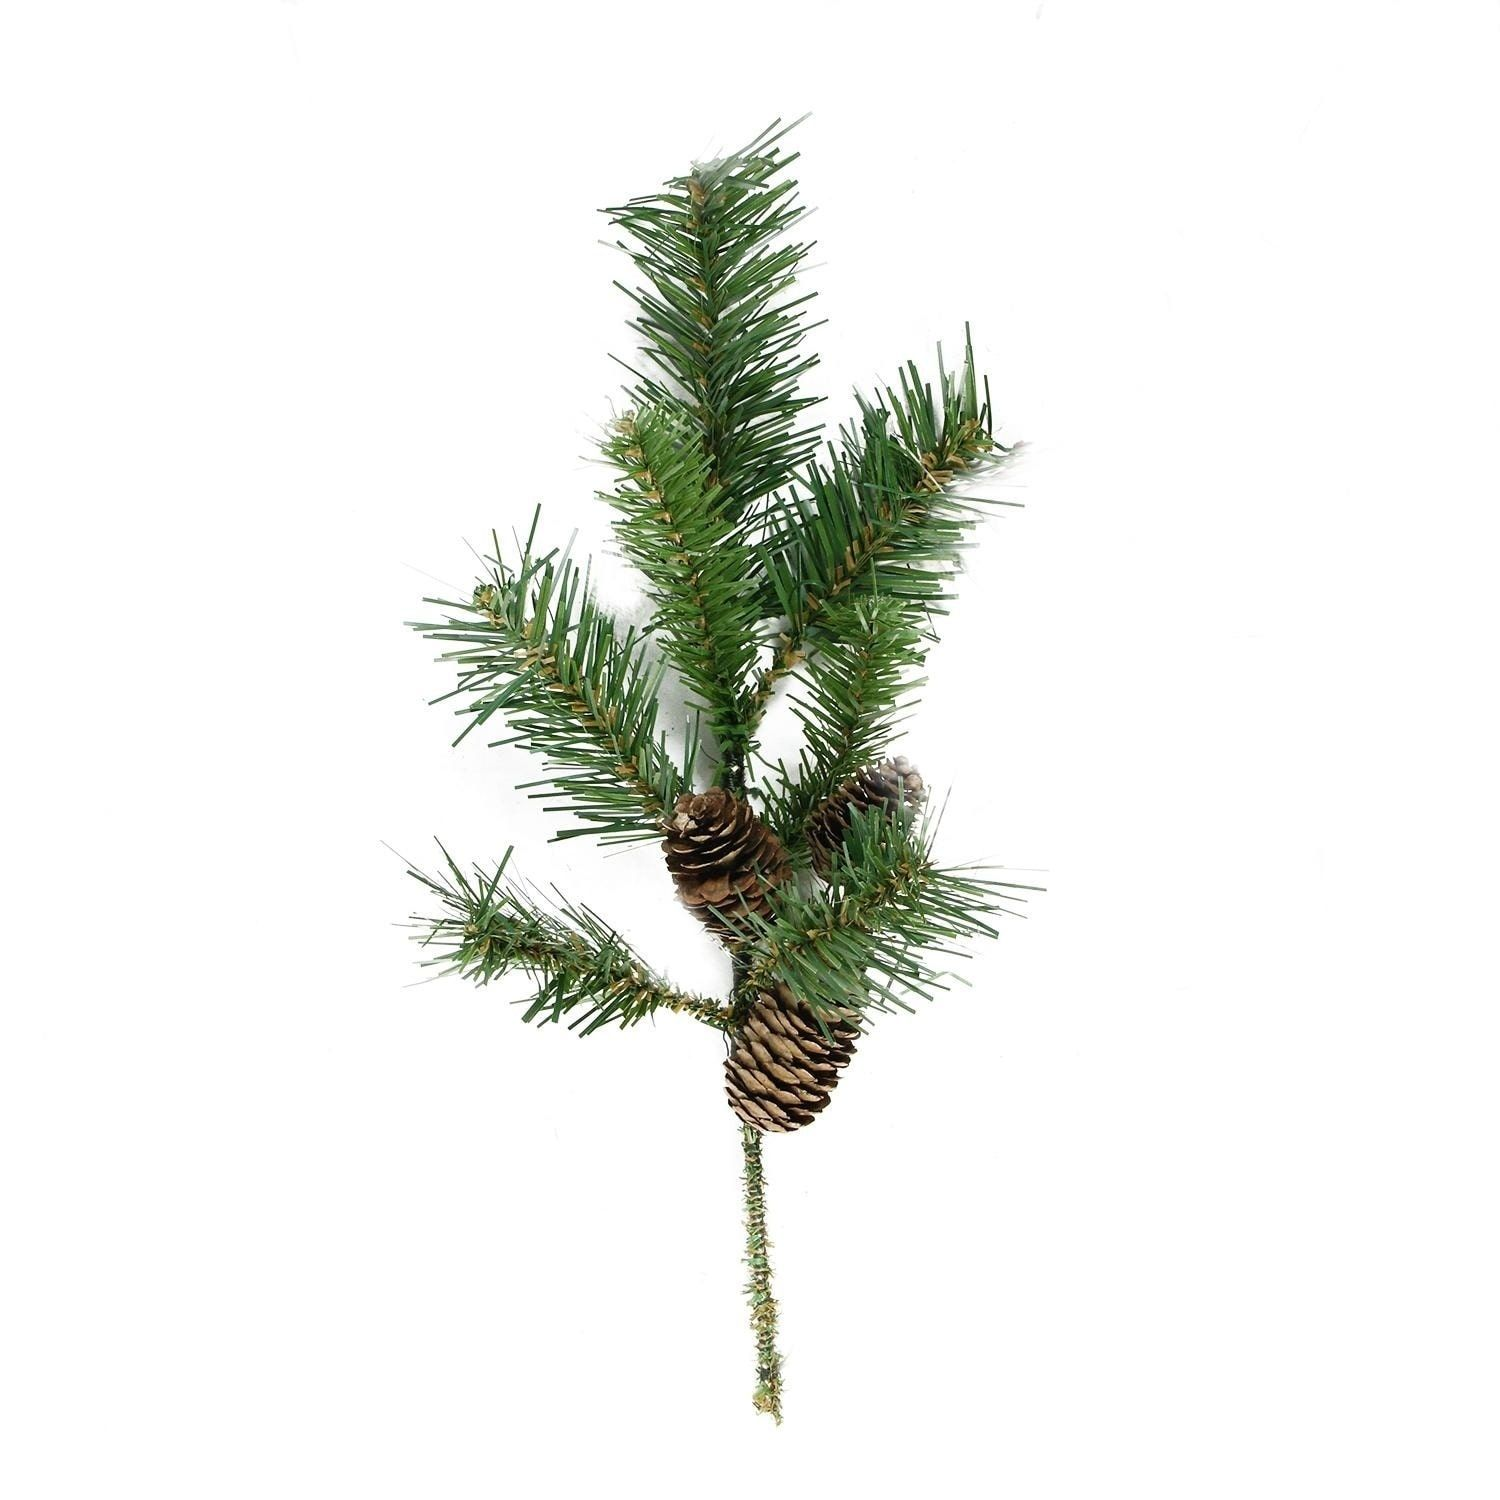 Online Shopping Bedding Furniture Electronics Jewelry Clothing More Country Christmas Decorations Christmas Crafts Pine Cones For Sale